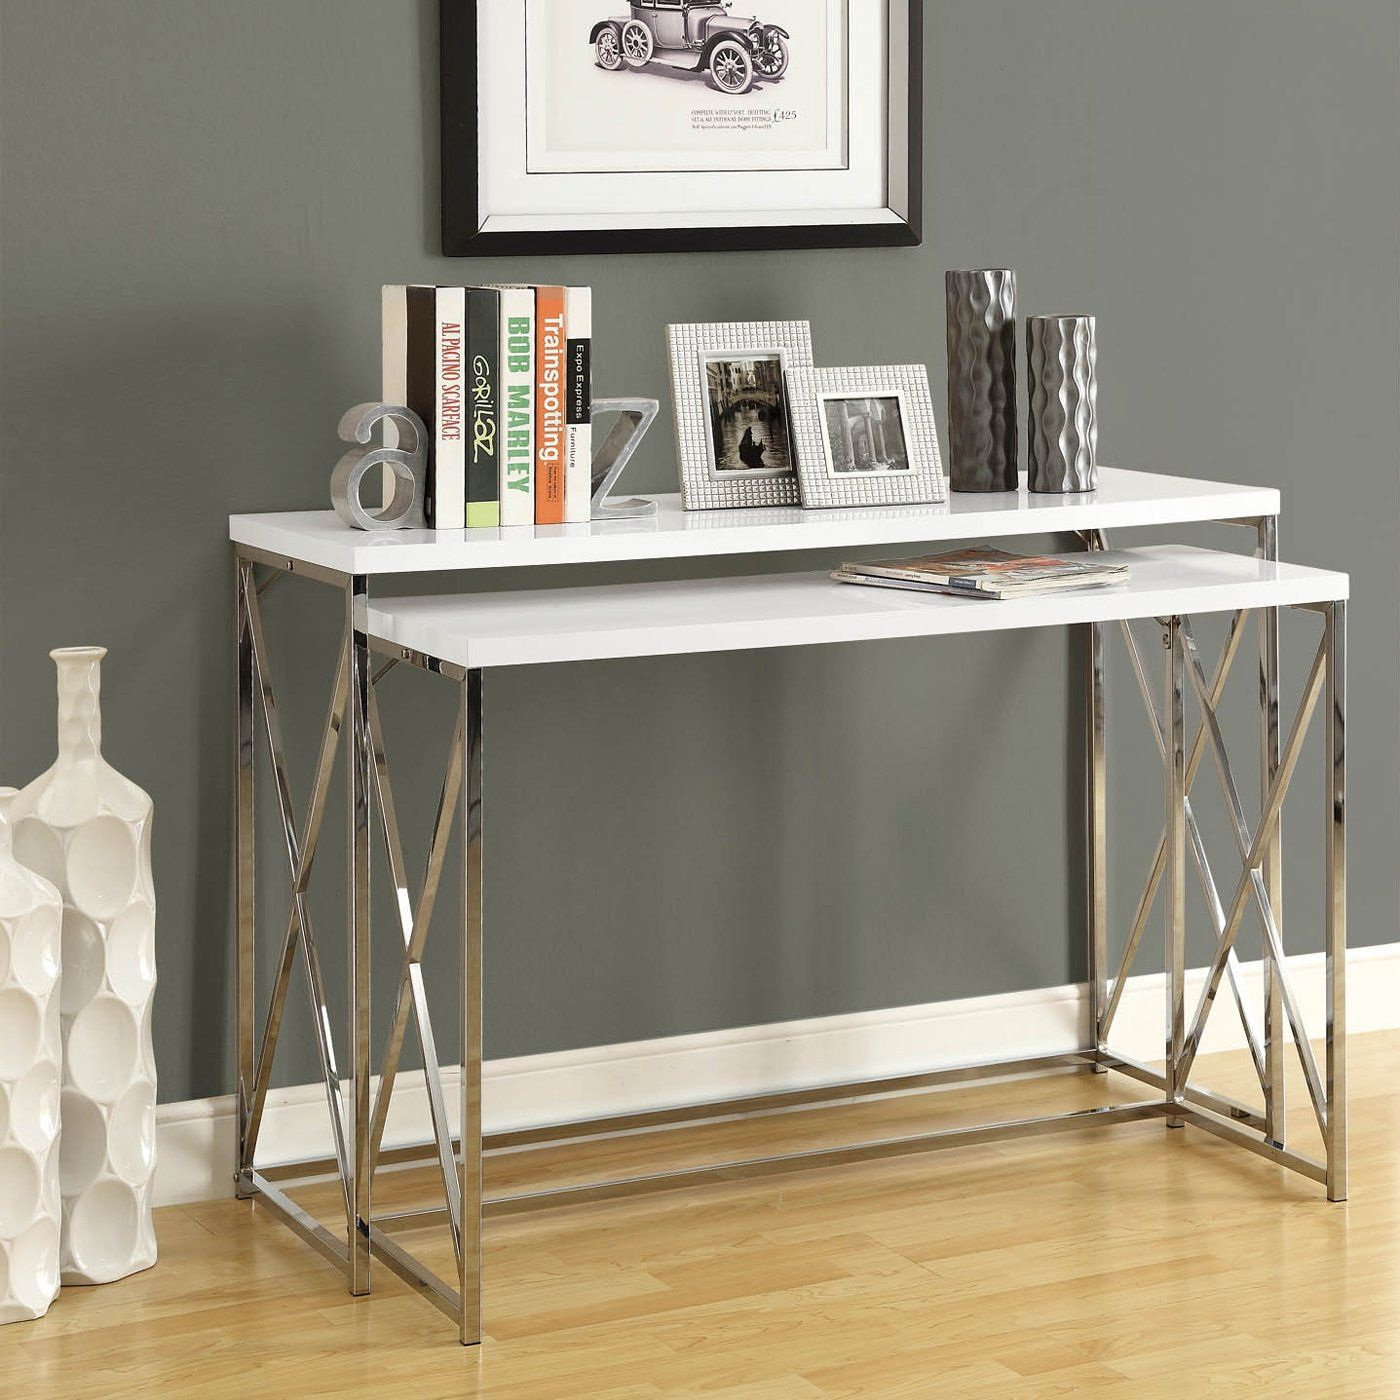 Convenience Concepts Soho Wood Glass Console Table - Free Shipping Today -  Overstock.com - 19143593